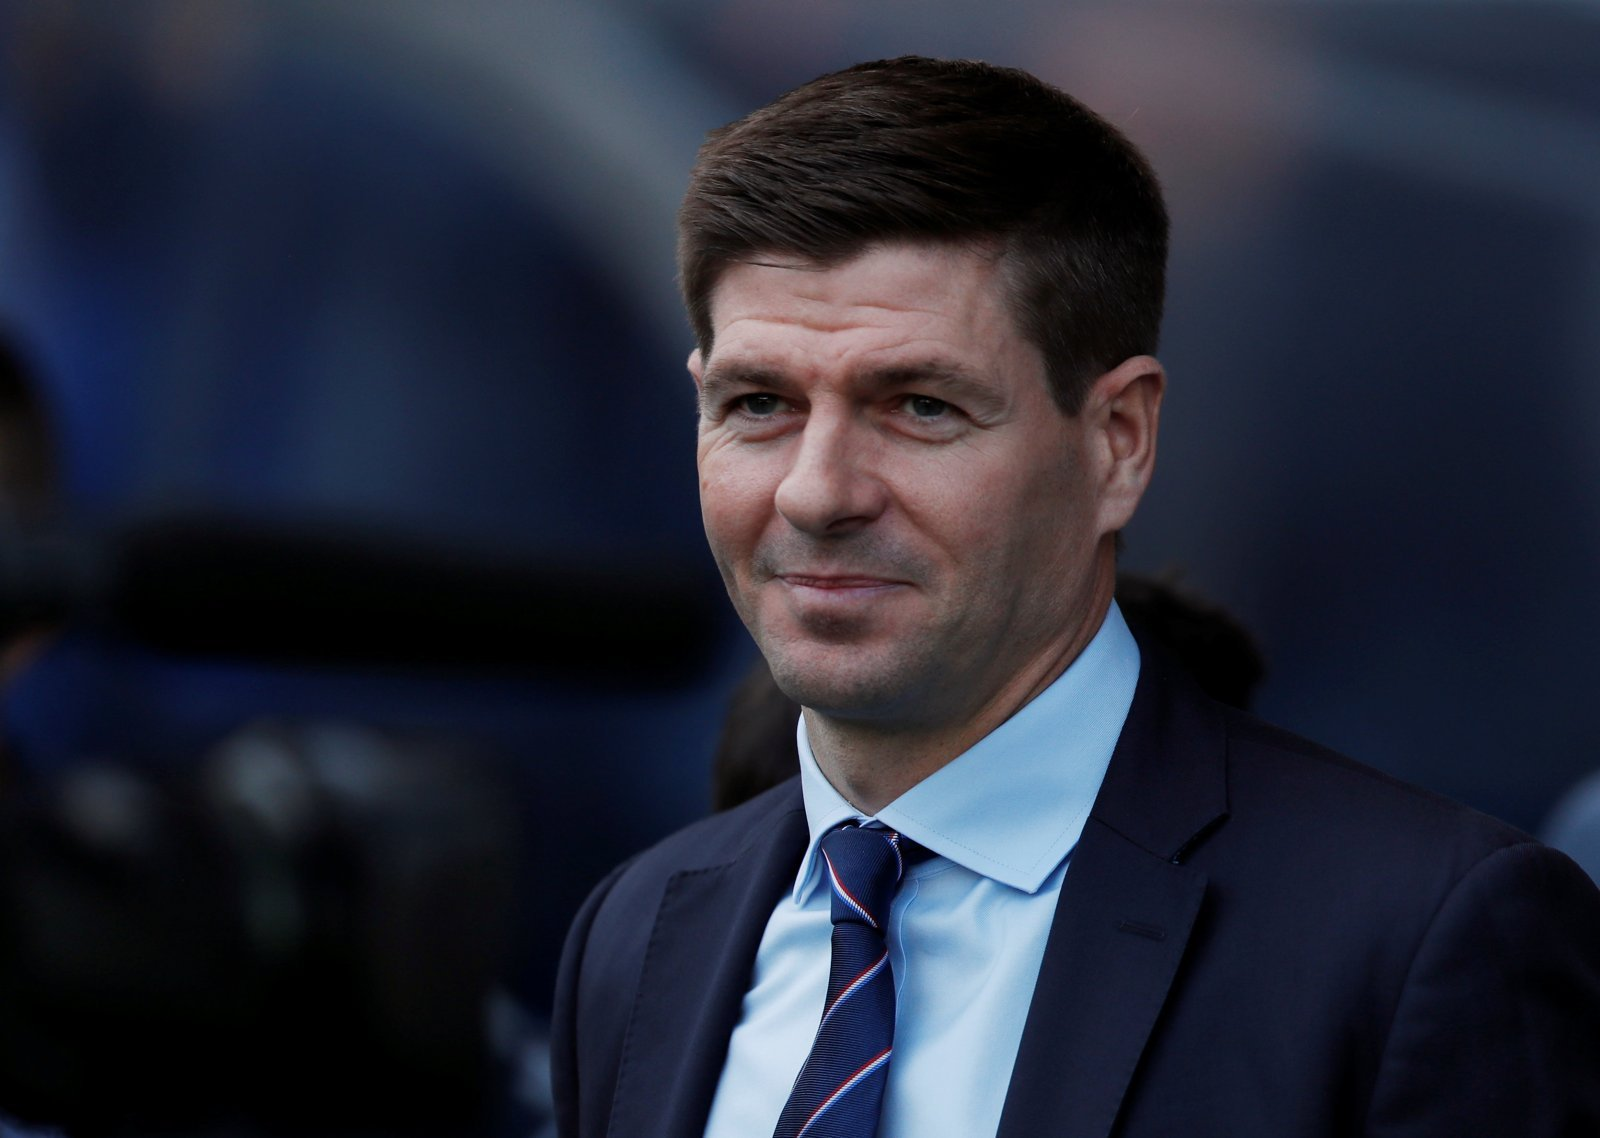 Rangers: Steven Gerrard has earned contract offer with huge strides made on his watch